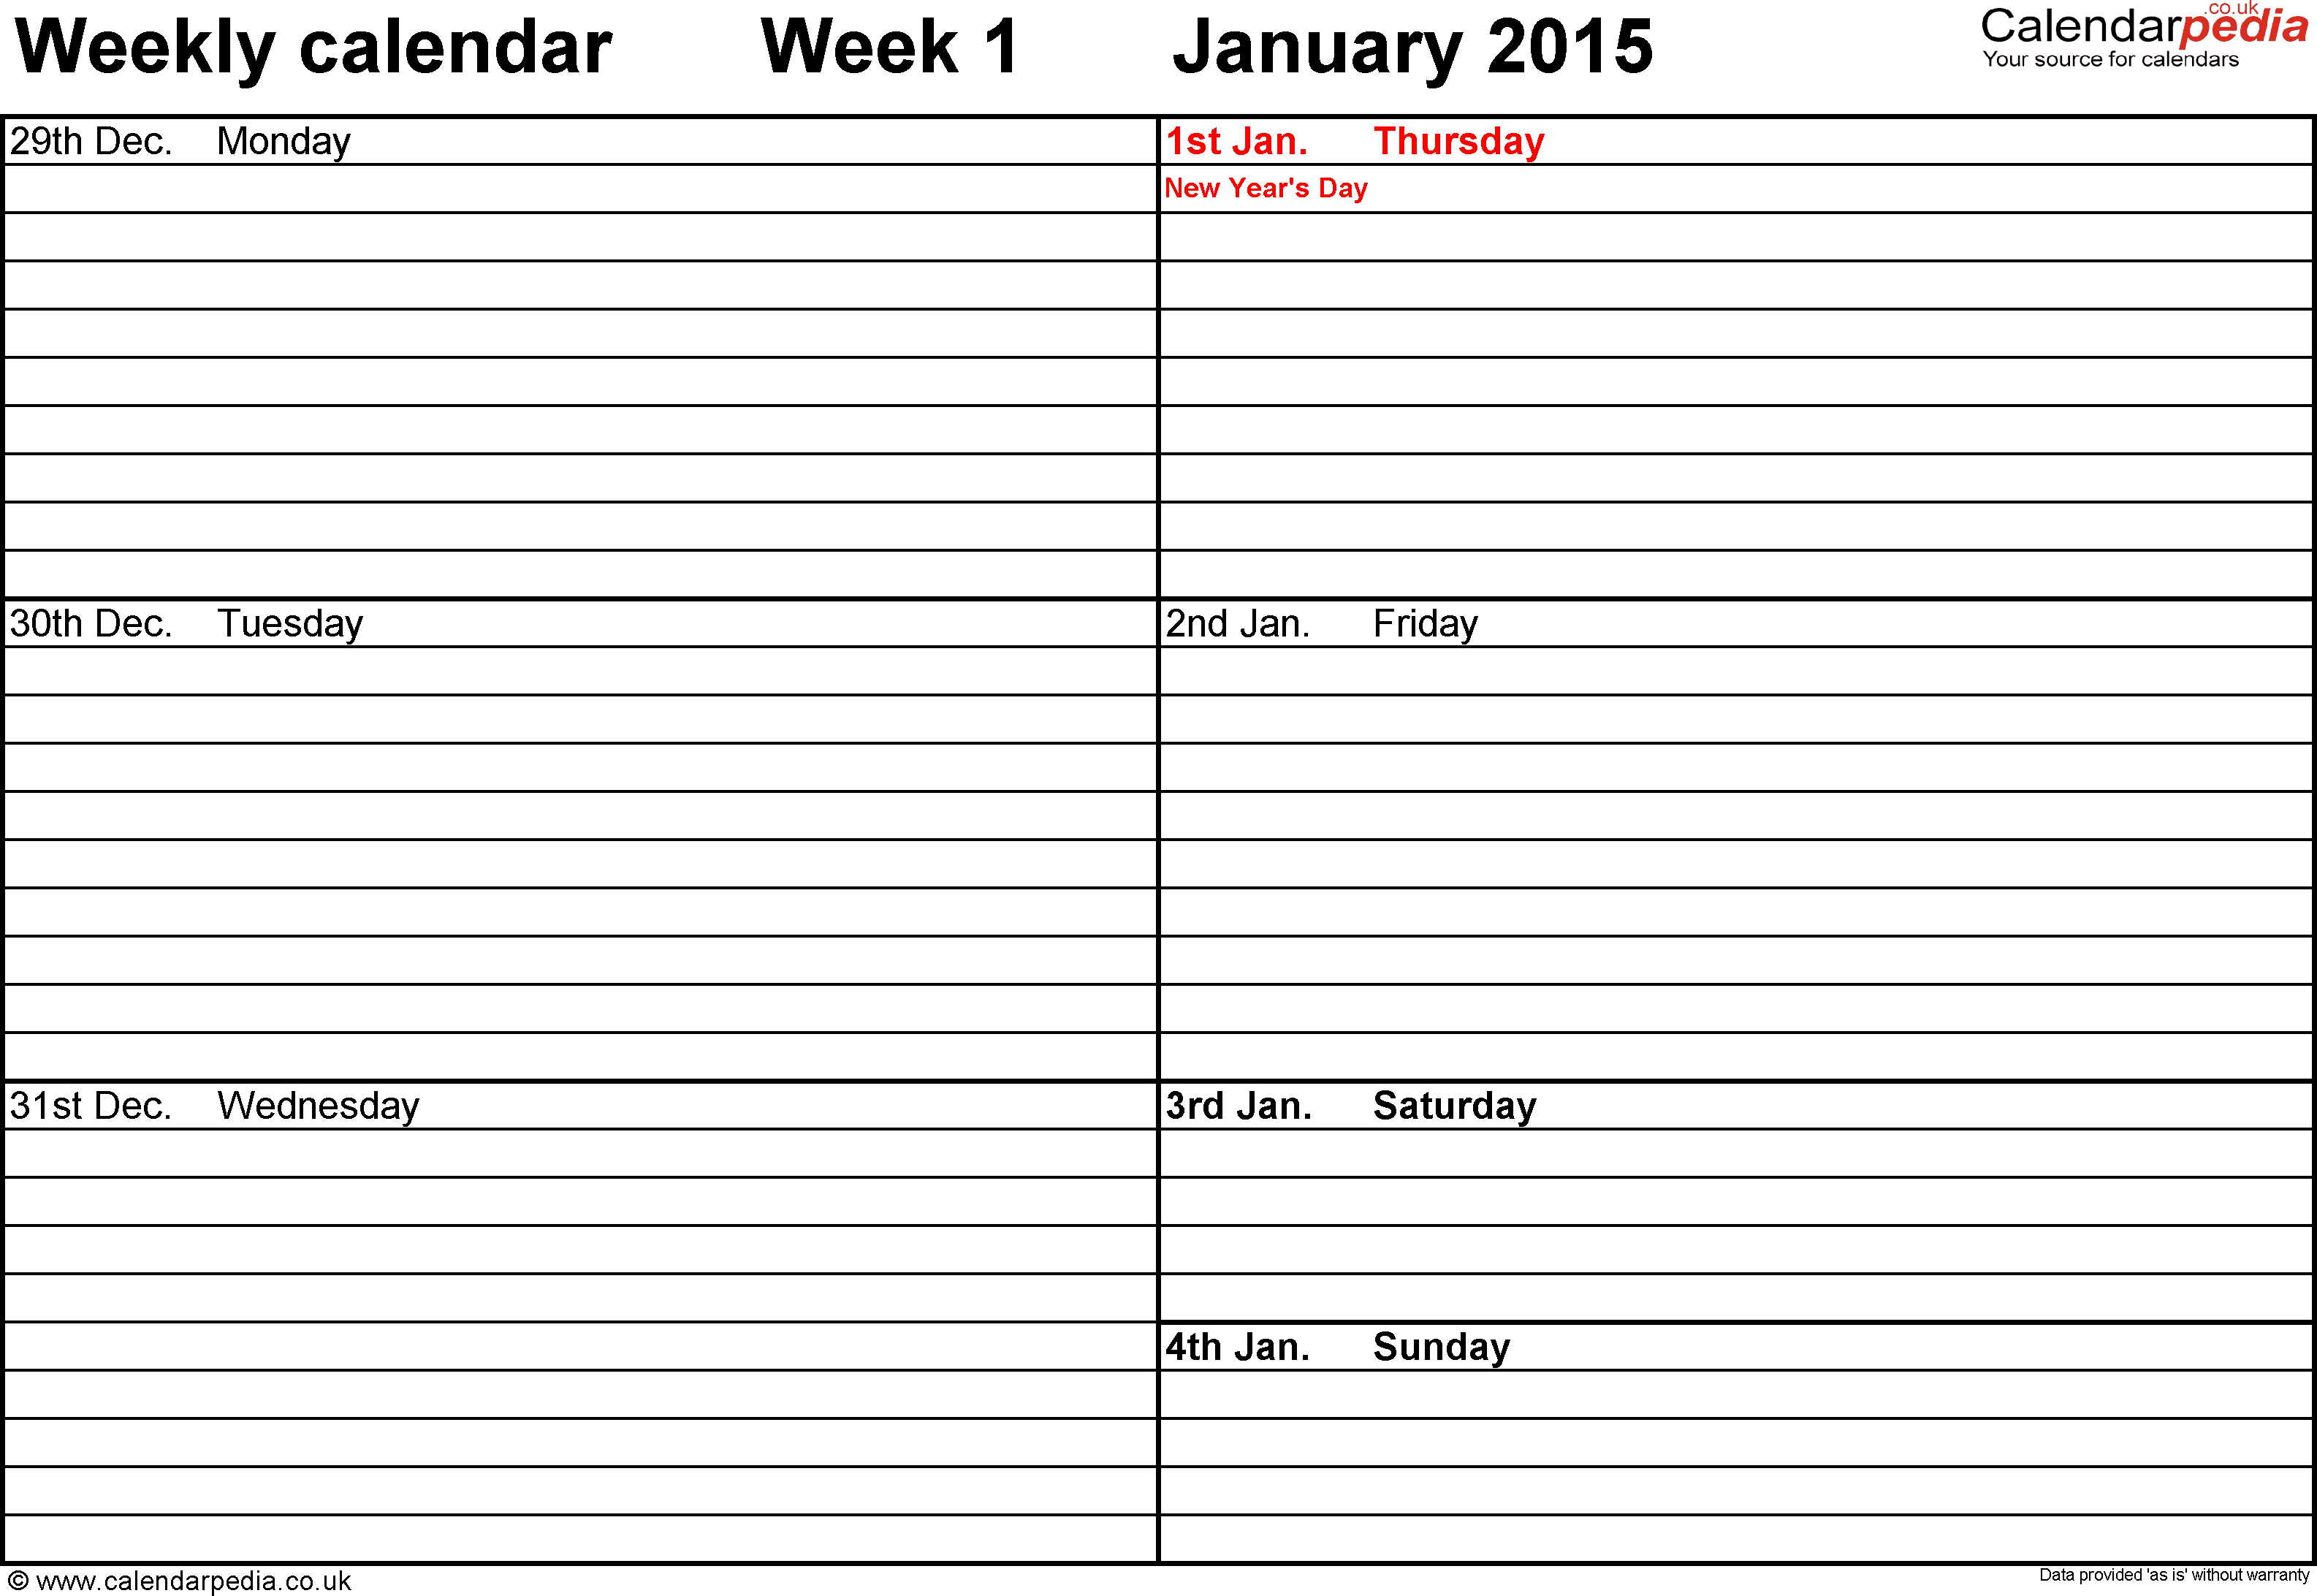 Weekly Calendars Kleobeachfixco - Bi weekly work schedule templates free